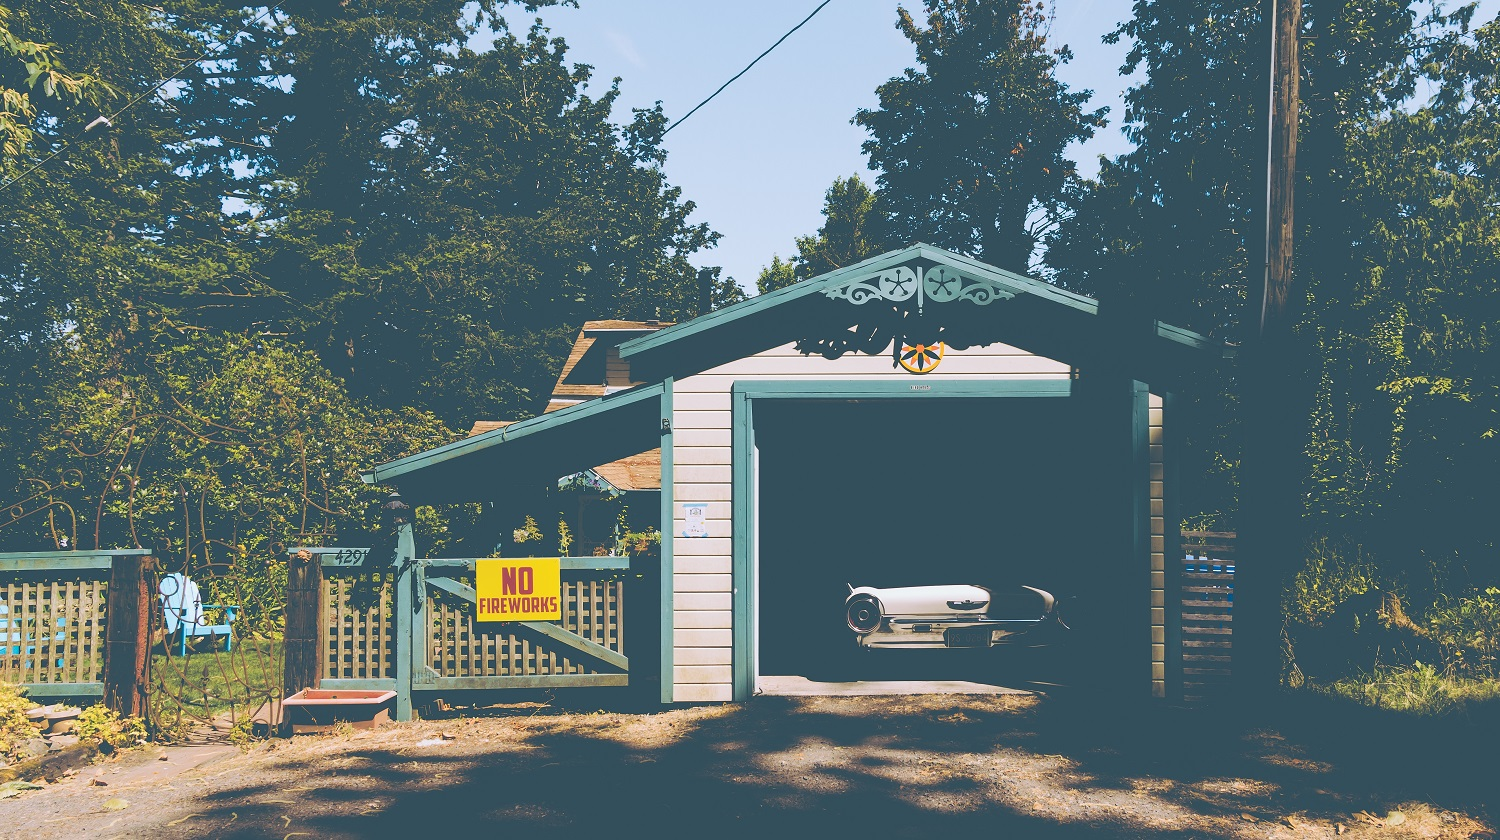 """An old vintage car parked in a small garage next to a sign on a fence that reads """"NO FIREWORKS"""""""